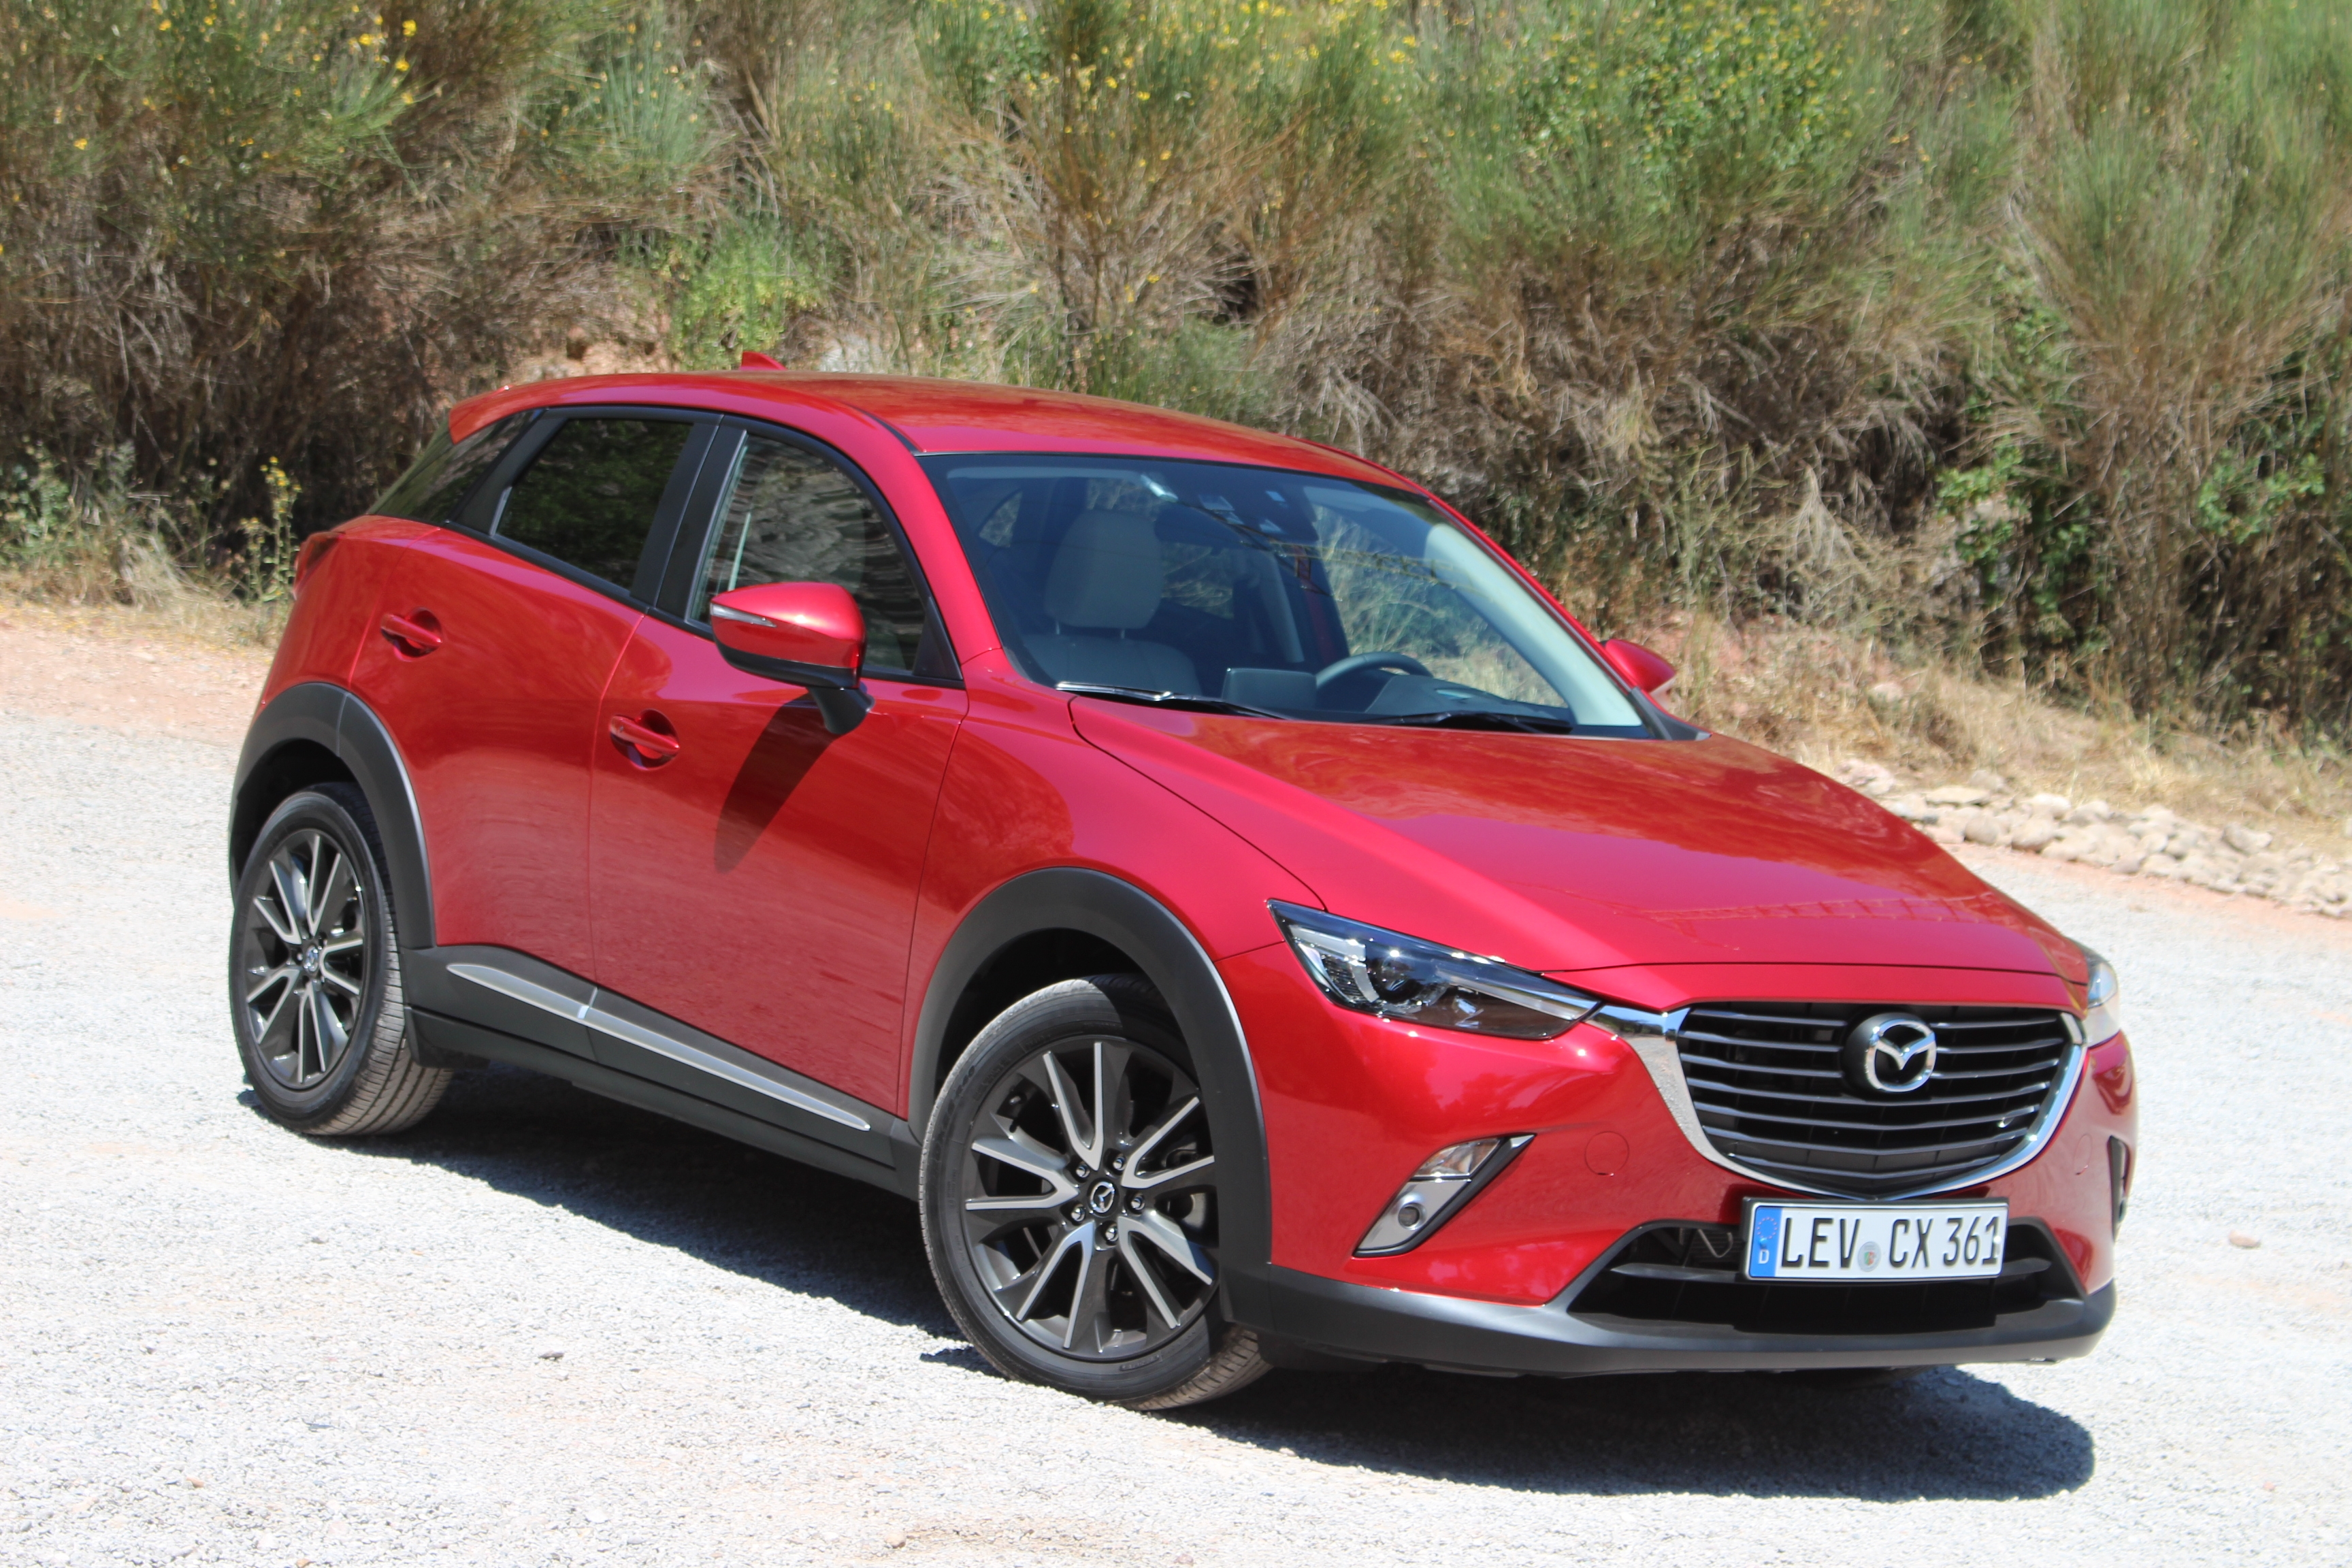 4 toiles au crash test euroncap le mazda cx 3 pas si bon l ve. Black Bedroom Furniture Sets. Home Design Ideas